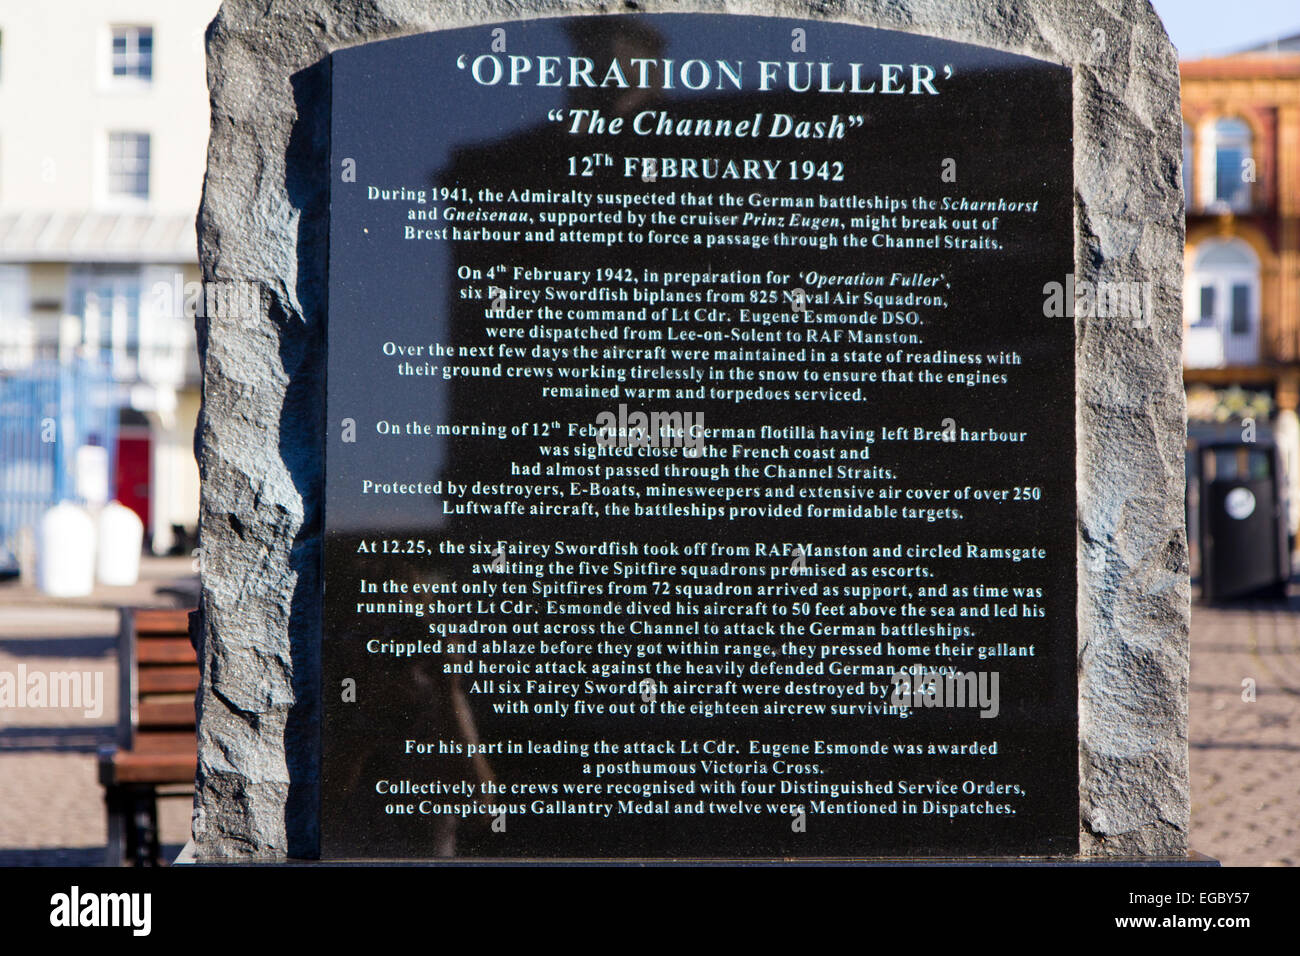 England, Ramsgate. Harbour, memorial stone to Operation Fuller, The Channel Dash 1942. - Stock Image